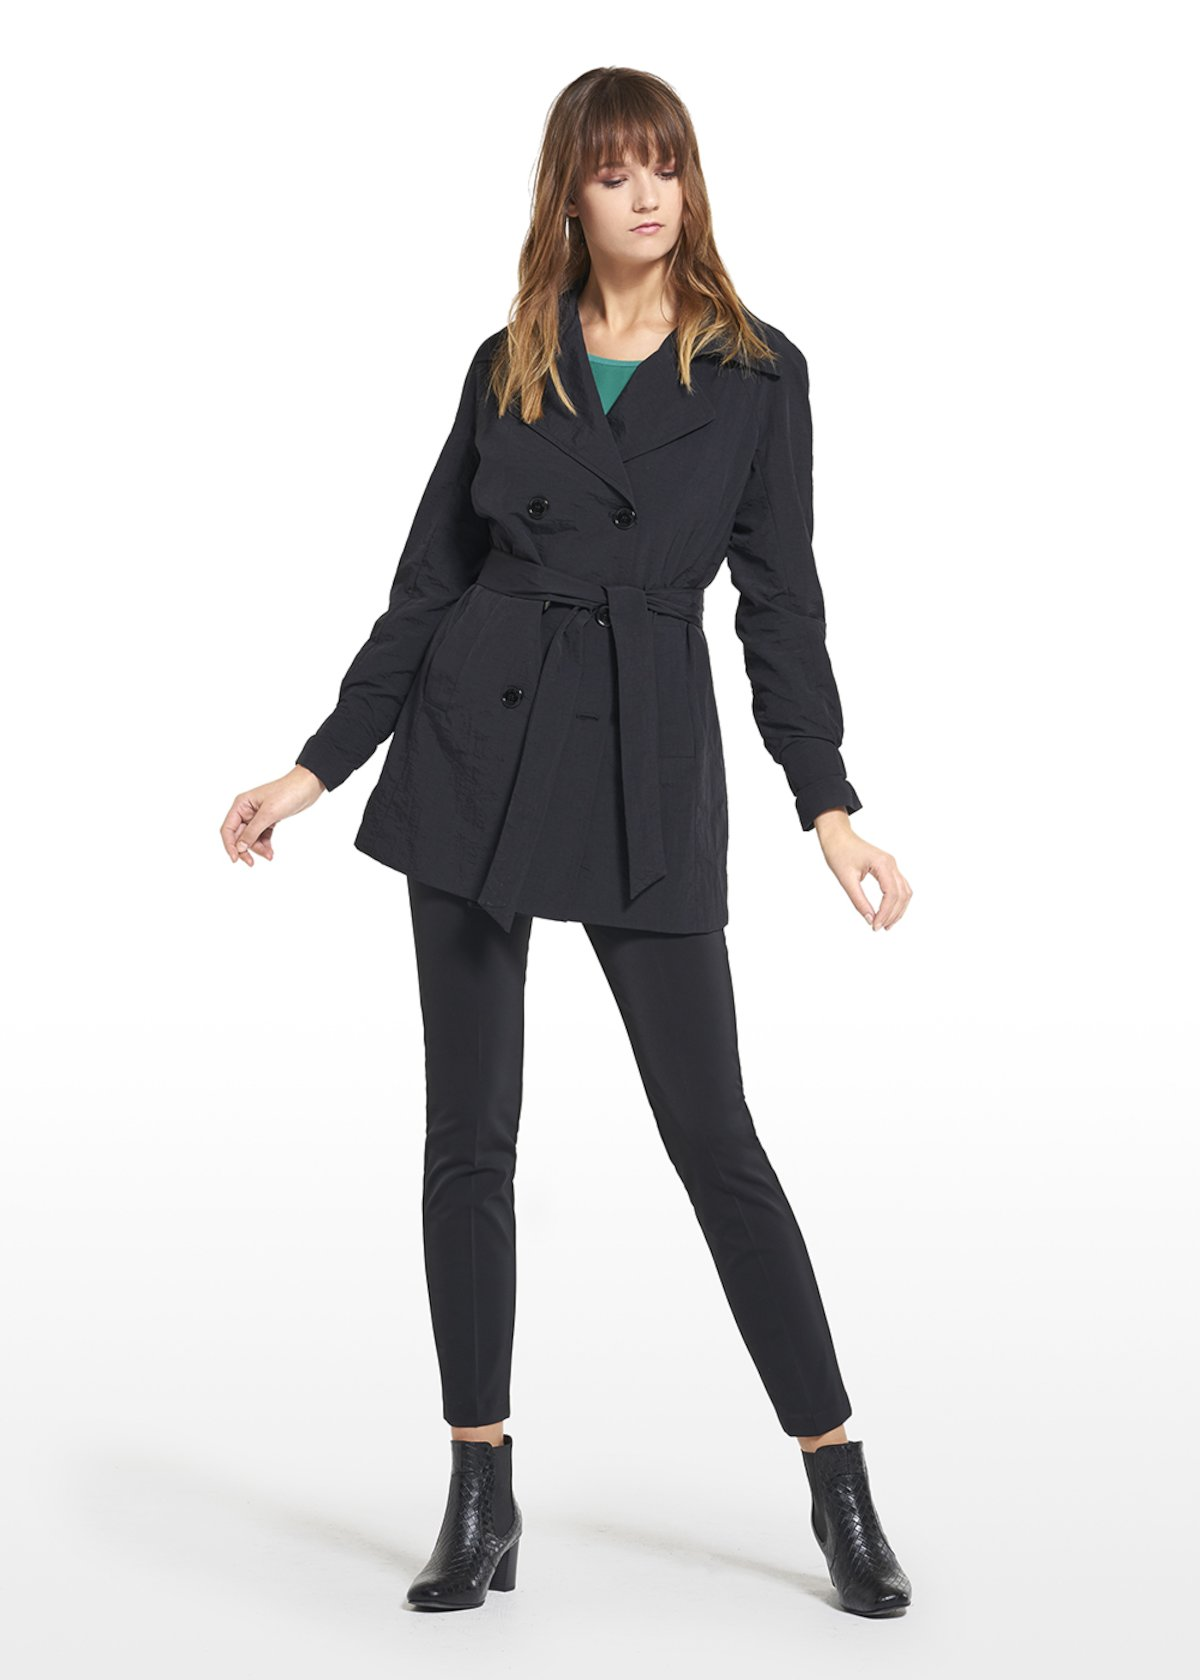 Trench Tulipano red passion - Black - Woman